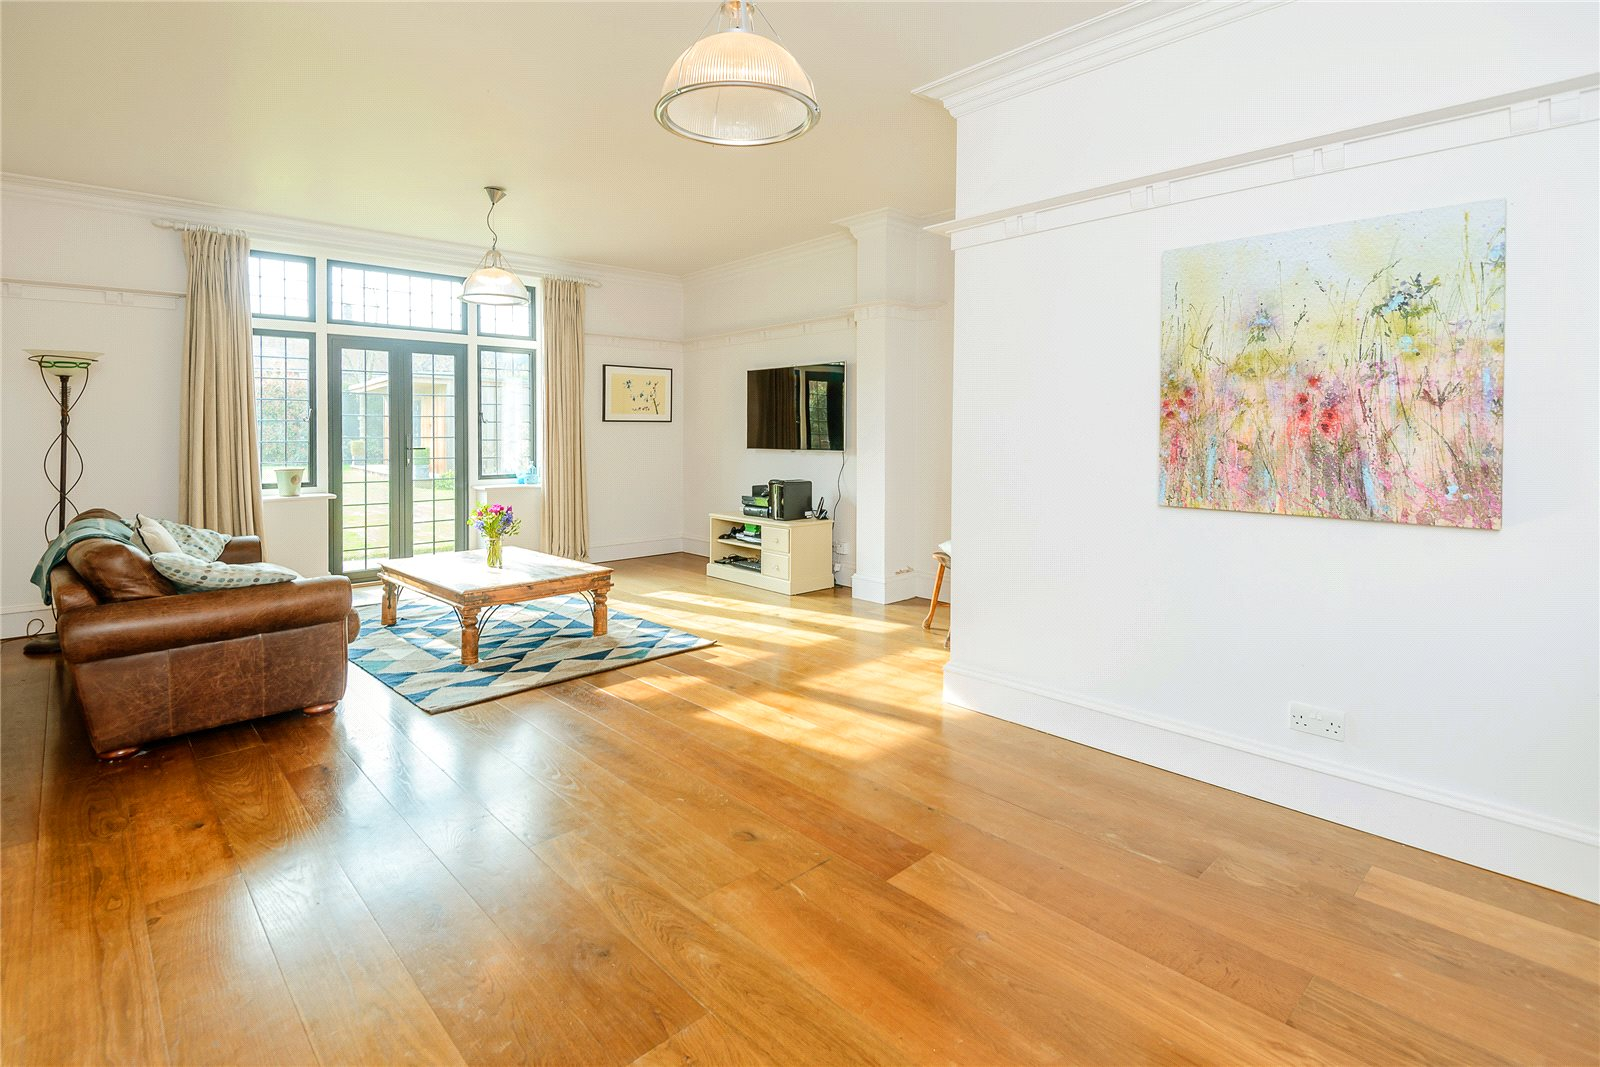 Additional photo for property listing at Packhorse Road, Gerrards Cross, Buckinghamshire, SL9 Gerrards Cross, Angleterre